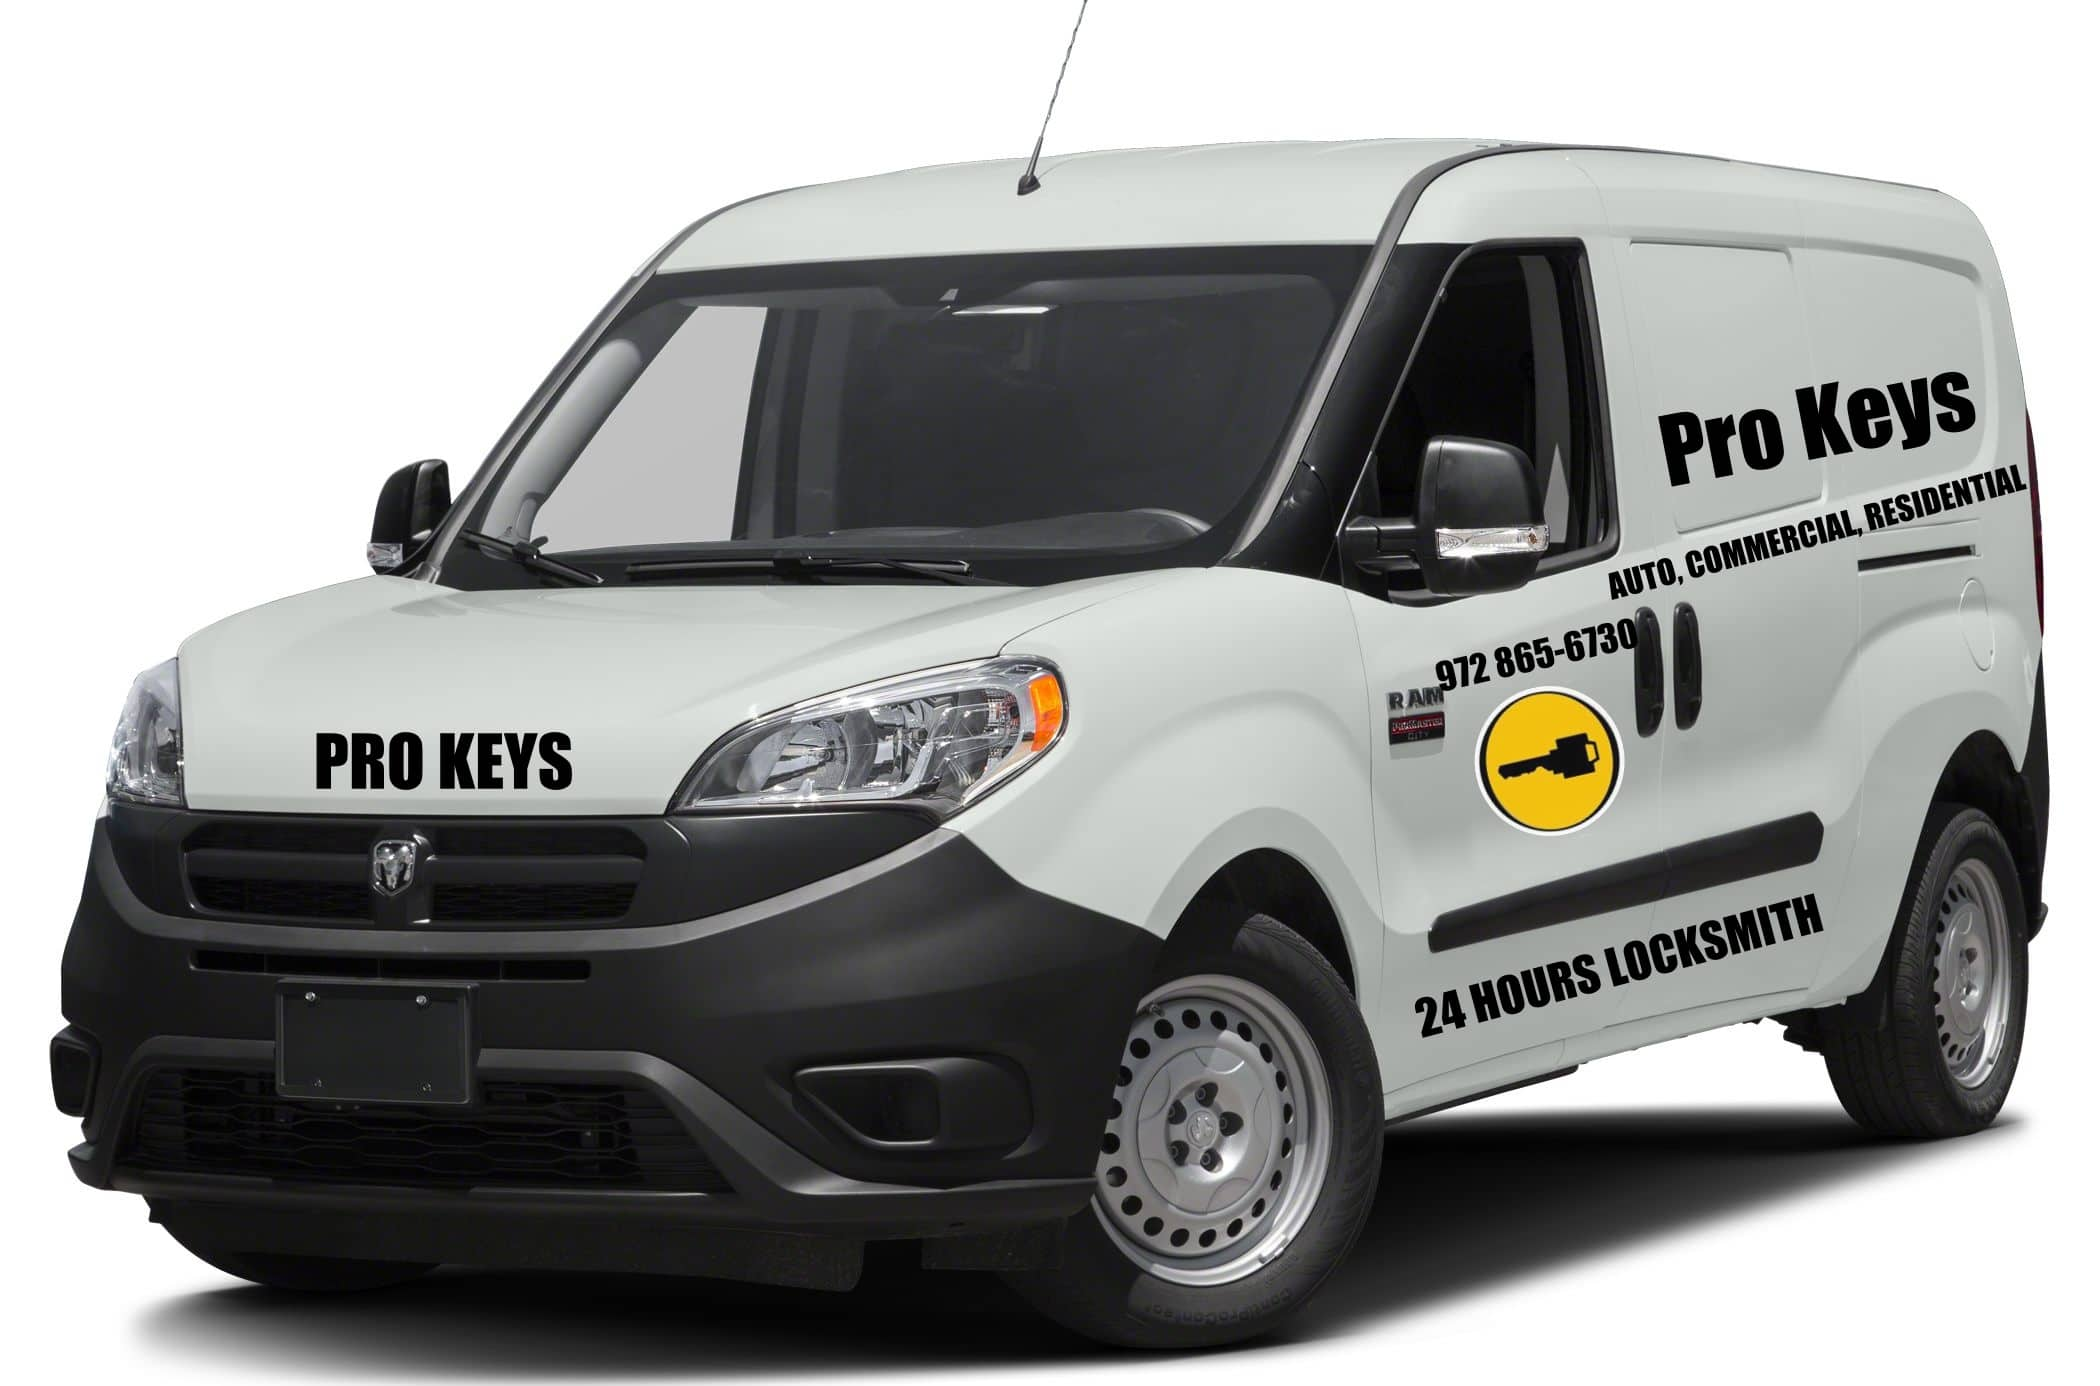 University Park Locksmith locksmith van